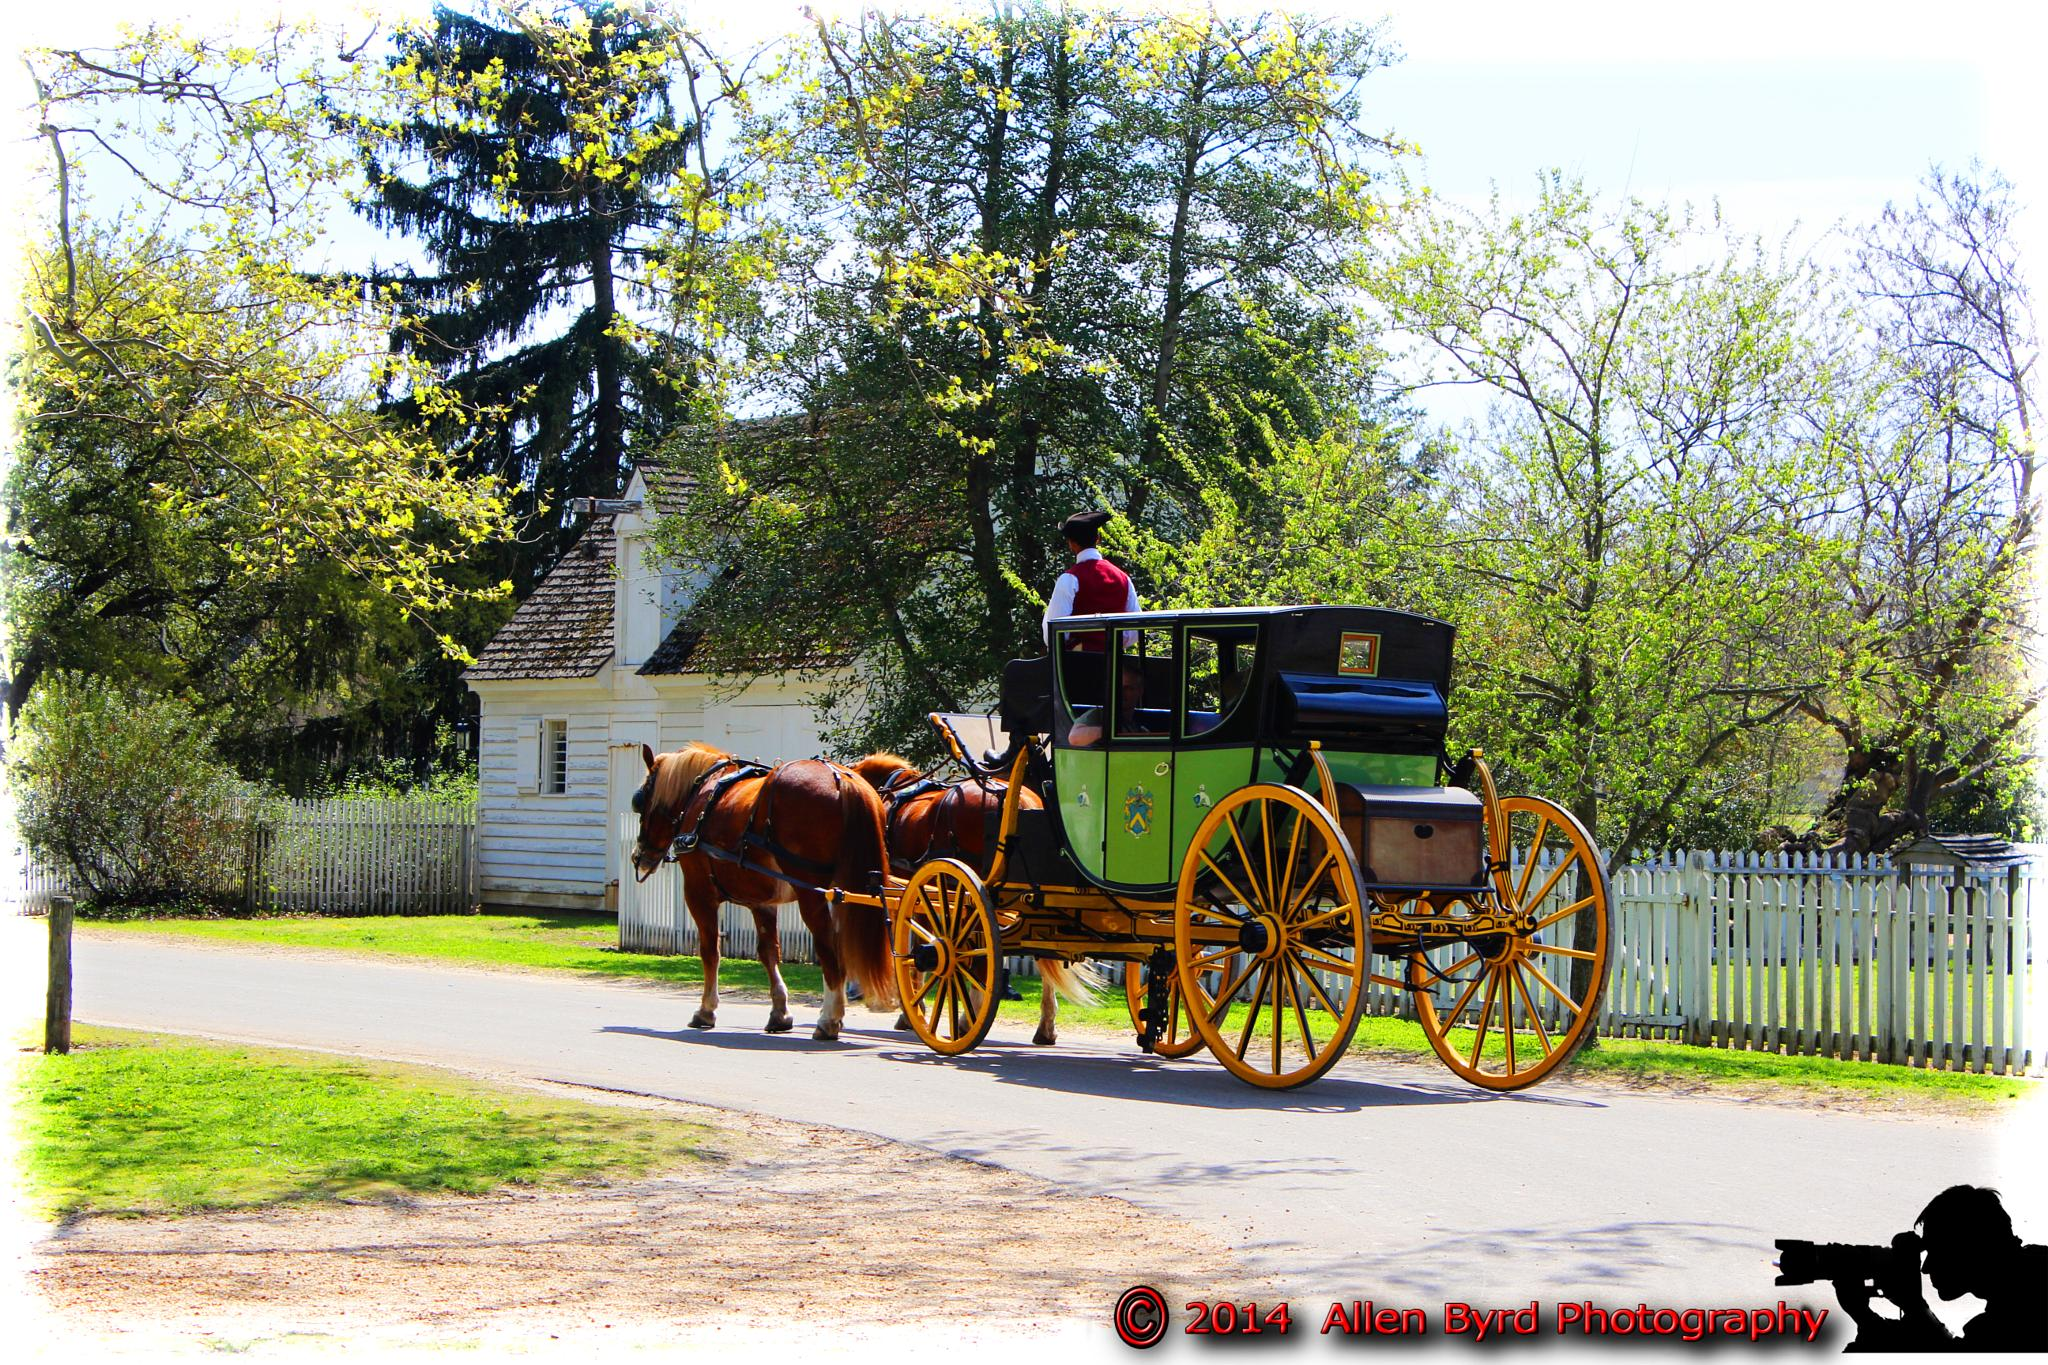 Williamsburg Carriage Ride by Allen Byrd Photography